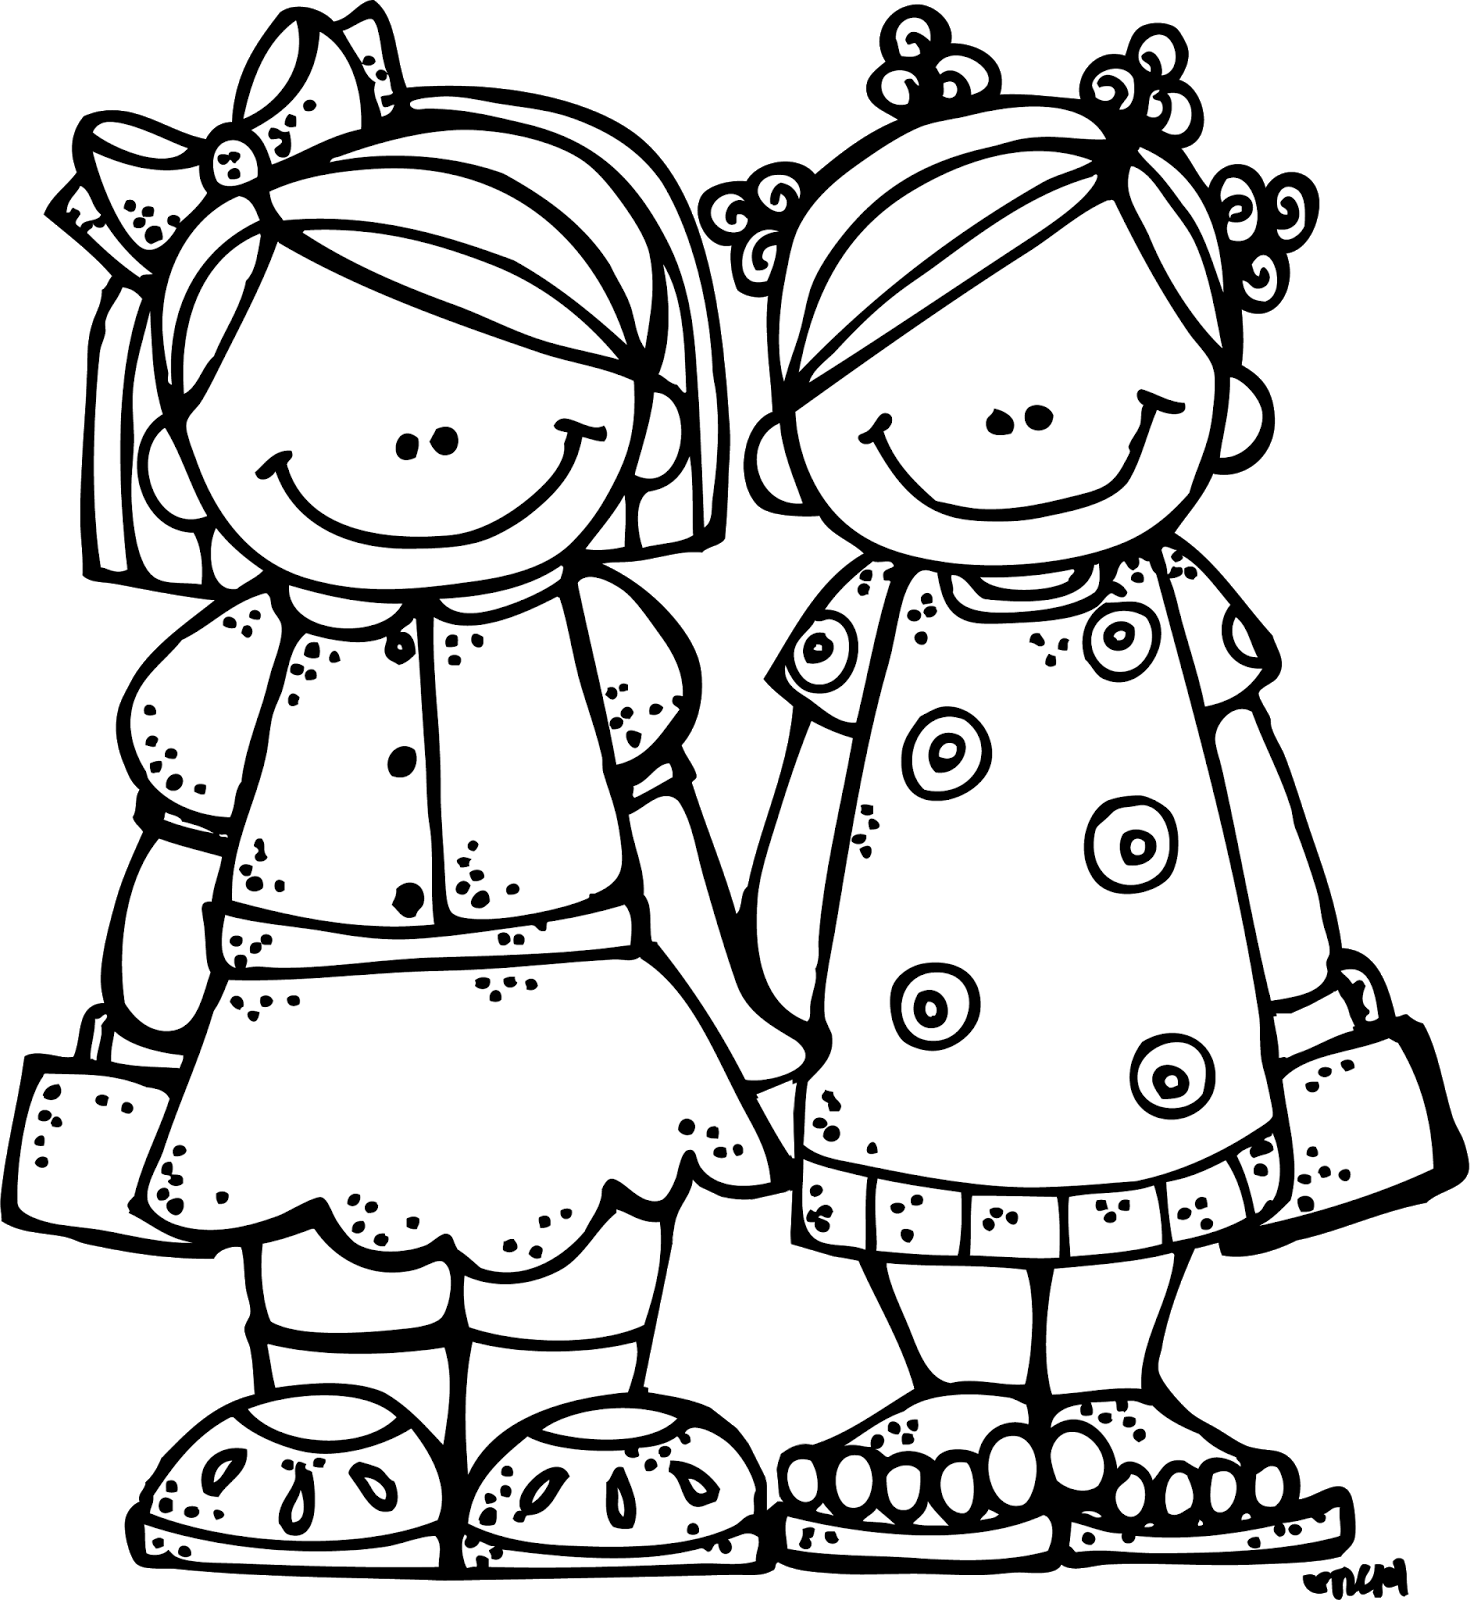 love your neighbor as yourself coloring page - several drawings of children can be found here